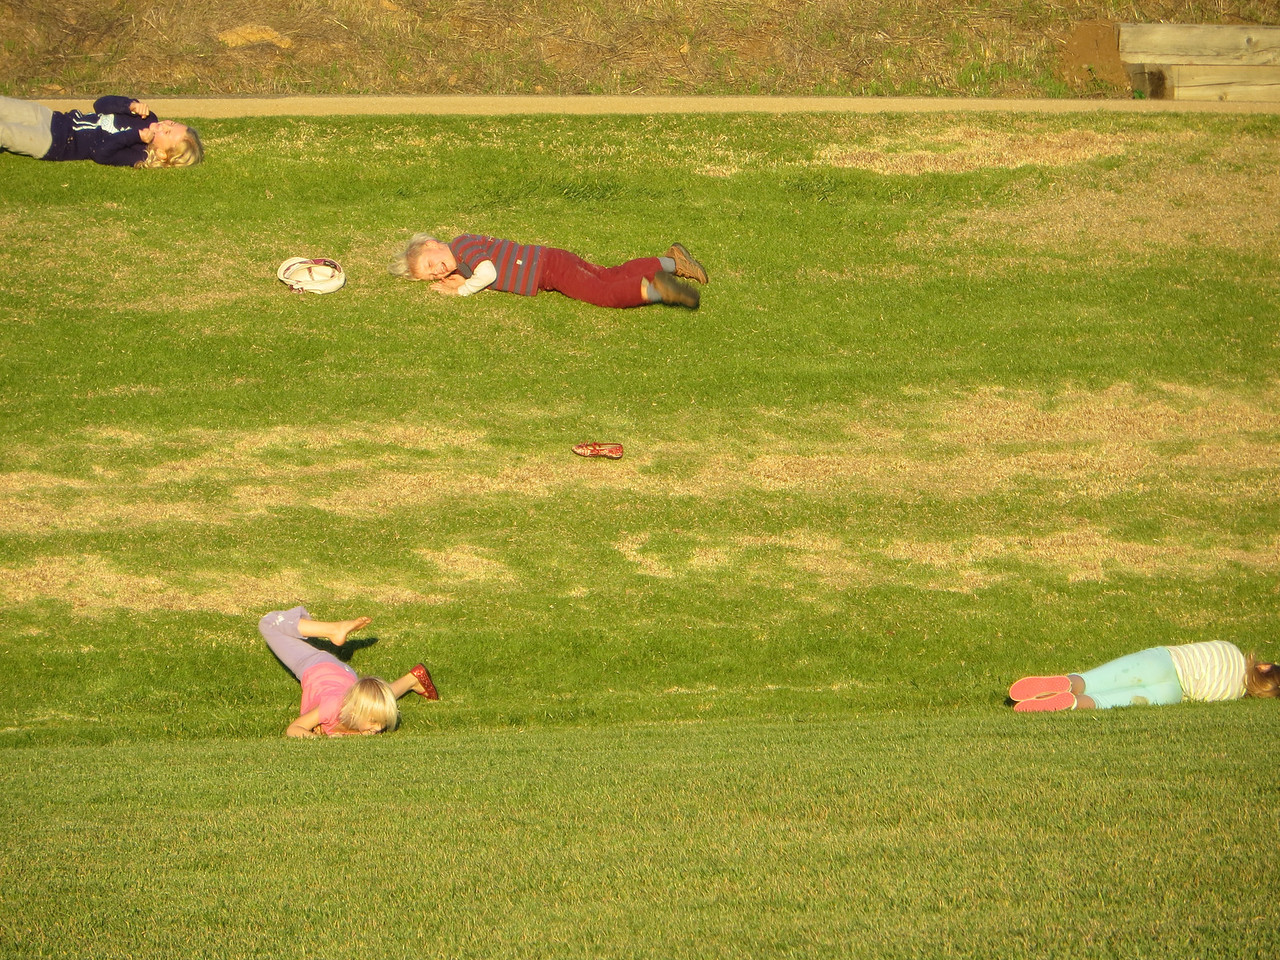 All four kids rolling down a hill.